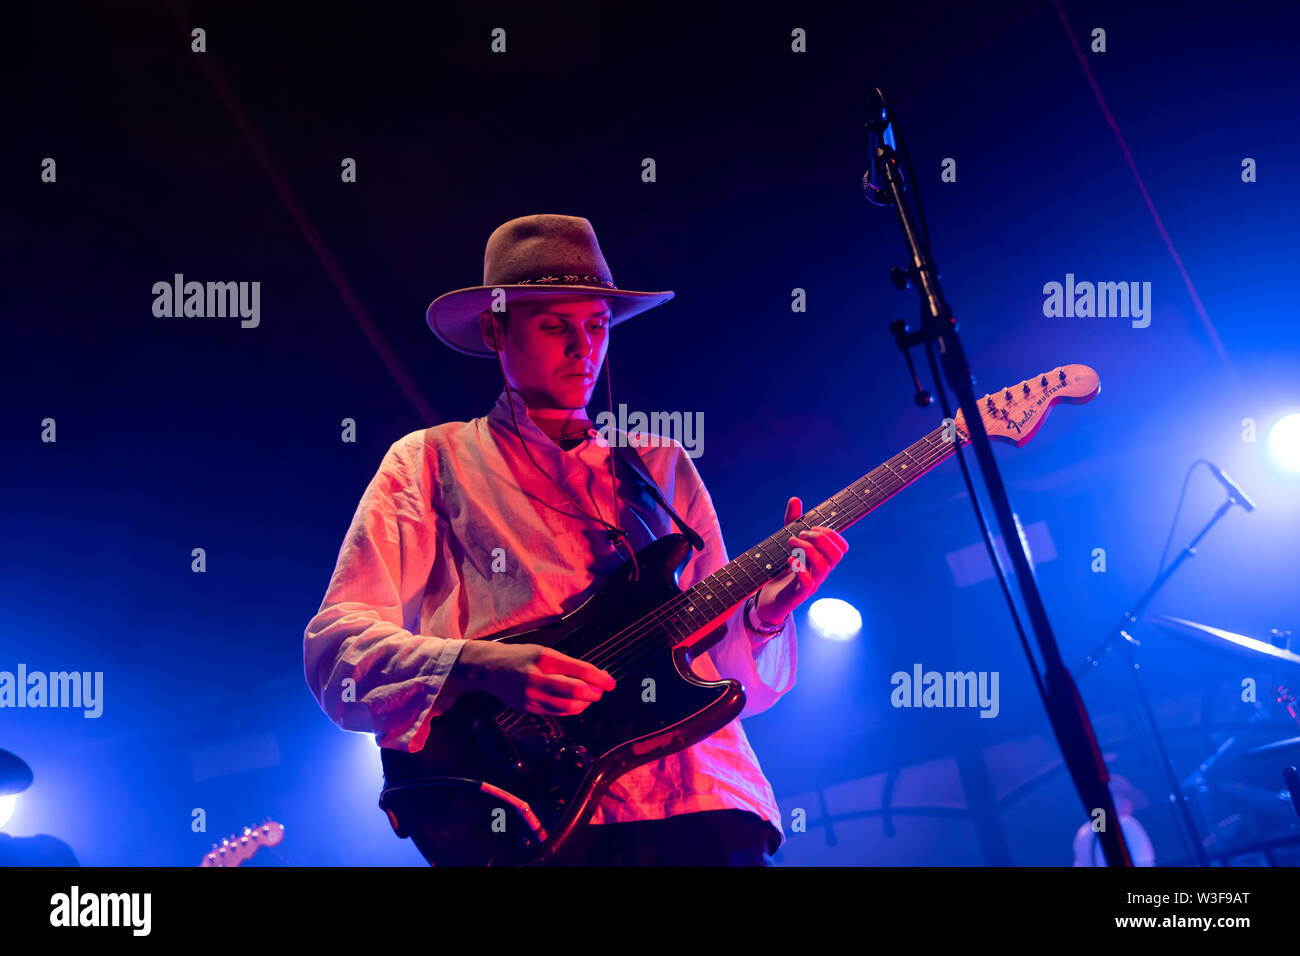 Bergen, Norway - June 15th, 2019. The British band Black Midi performs a live concert during the Norwegian music festival Bergenfest 2019 in Bergen. Here guitarist Matt Kwasniewski-Kelvin is seen live on stage. (Photo credit: Gonzales Photo - Jarle H. Moe). - Stock Image